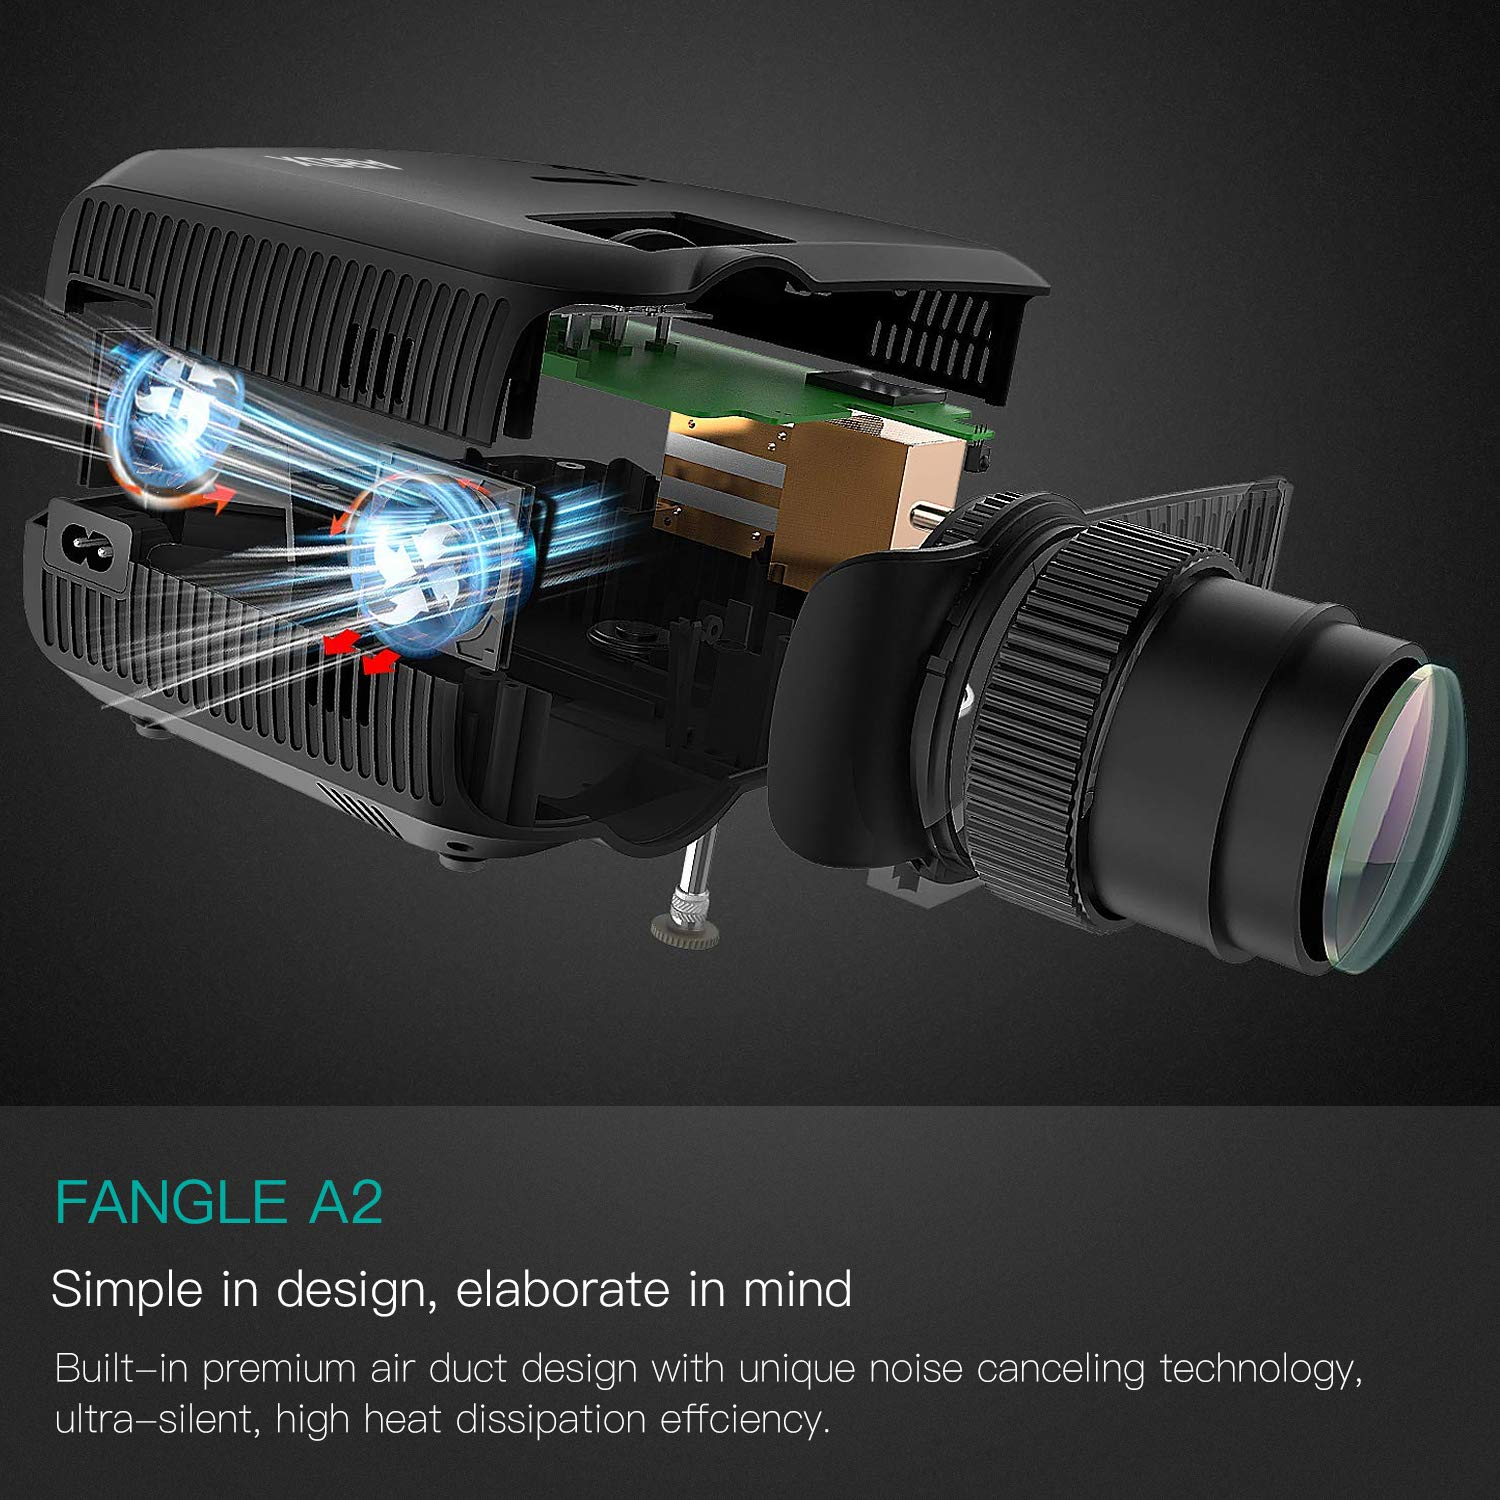 Projector, ABOX A2 LED Movie Video Projector with Full HD Native 720p, 100 ANSI Lumen, 180'' Big Screen, Hifi Speaker, Support 1080p with HDMI/USB/SD Card/VGA/AV Ports For Home Theater/Laptop/TV/Phones by GooBang Doo (Image #6)